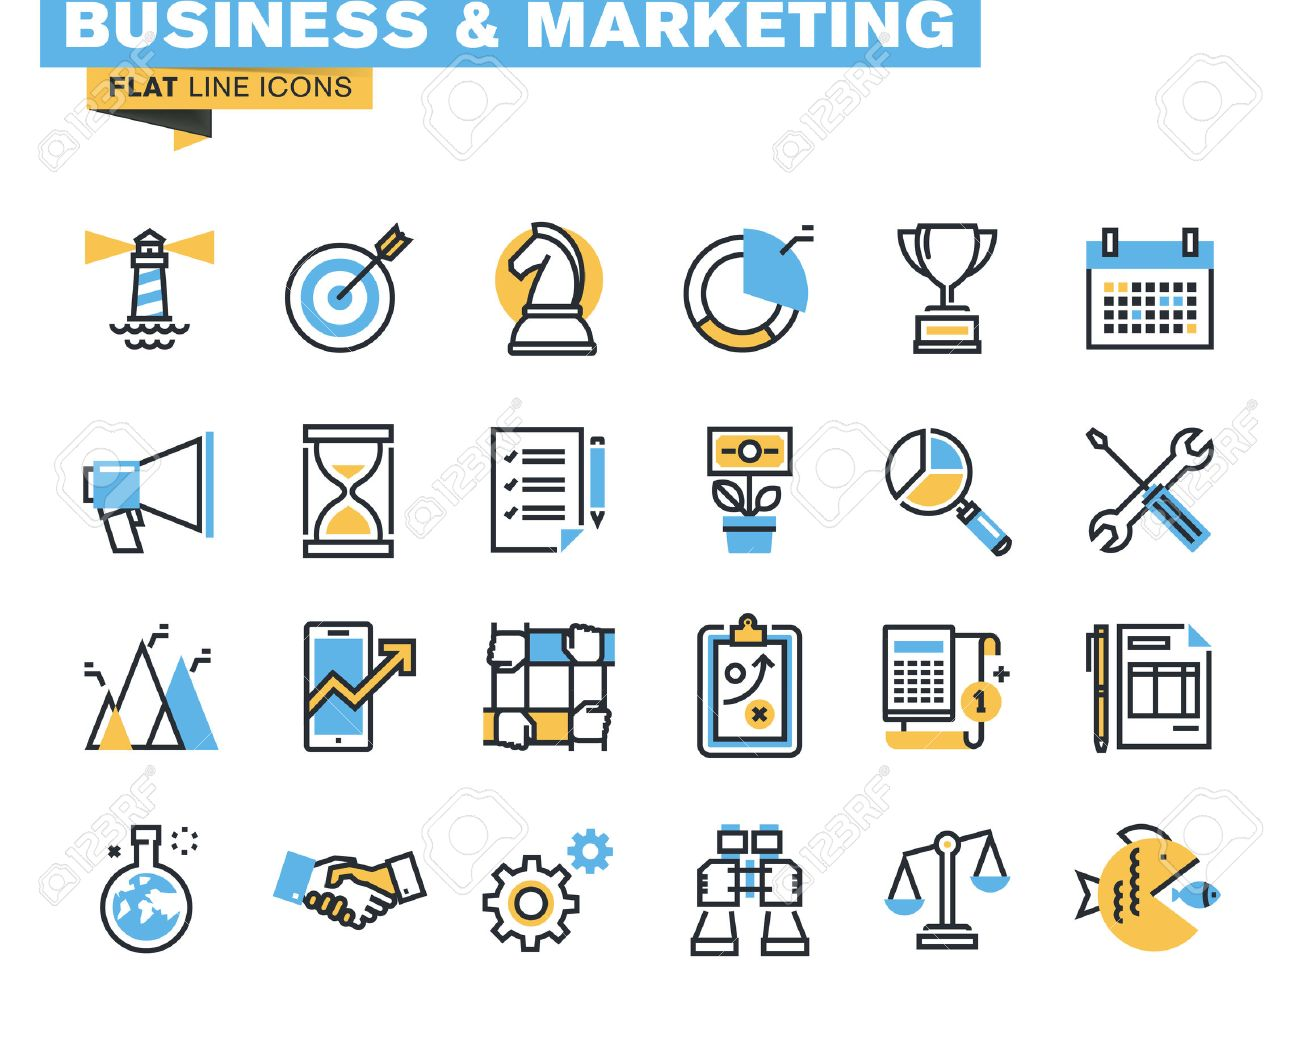 Trendy flat line icon pack for designers and developers. Icons for business, marketing, management, strategy, planning, analytics, finance, success, teamwork, market research, products and services development, for websites and mobile websites and apps. - 45816200